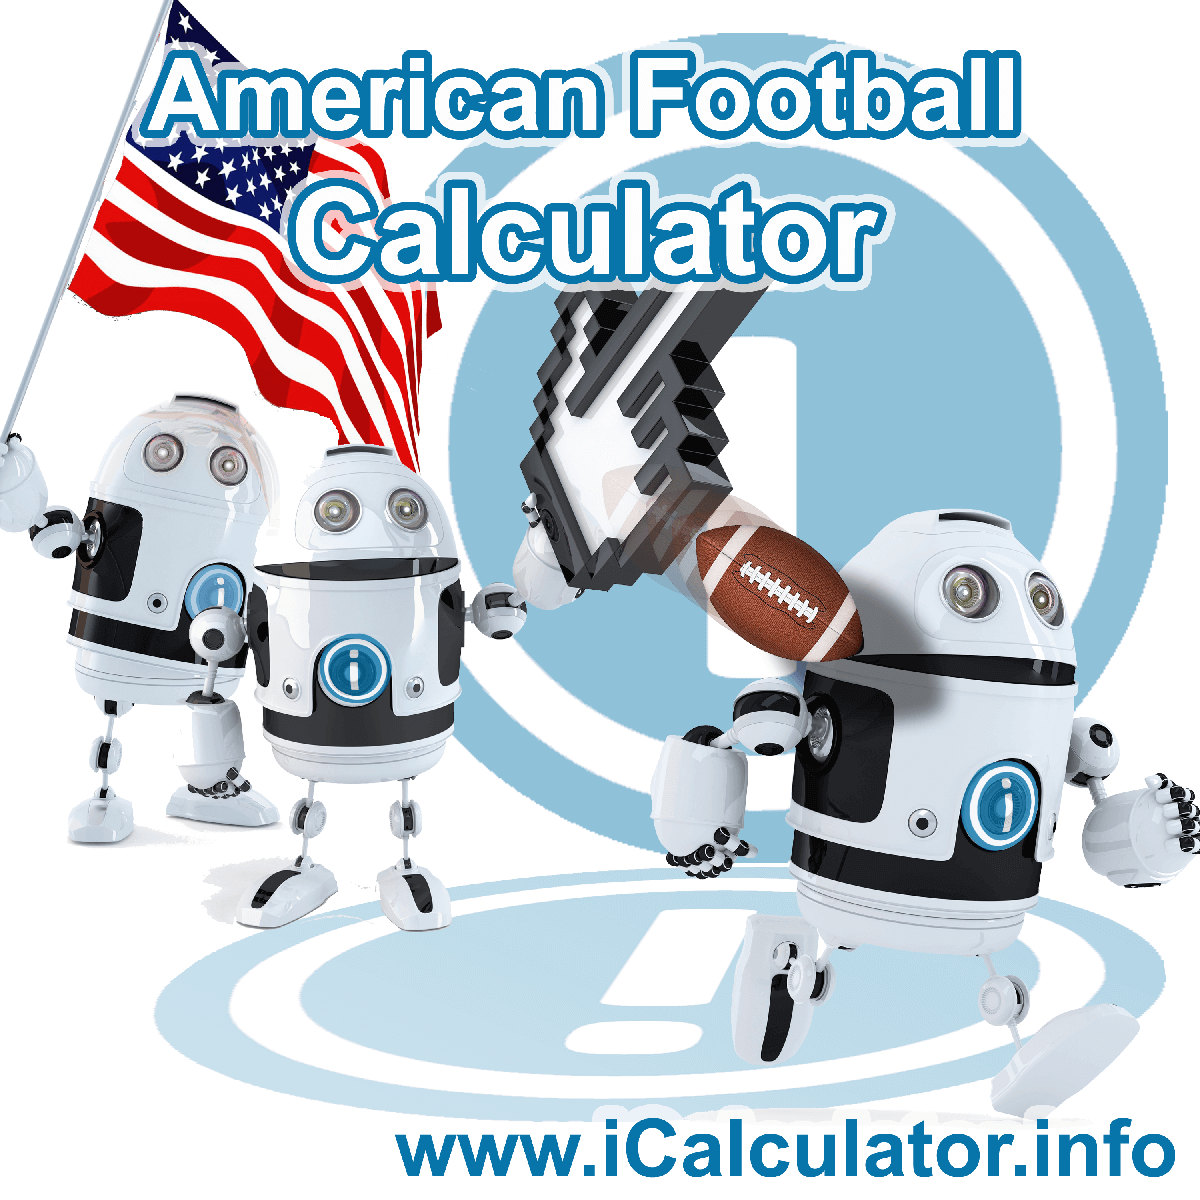 American Football Calculator. This image shows an American Football player playing american football - by iCalculator